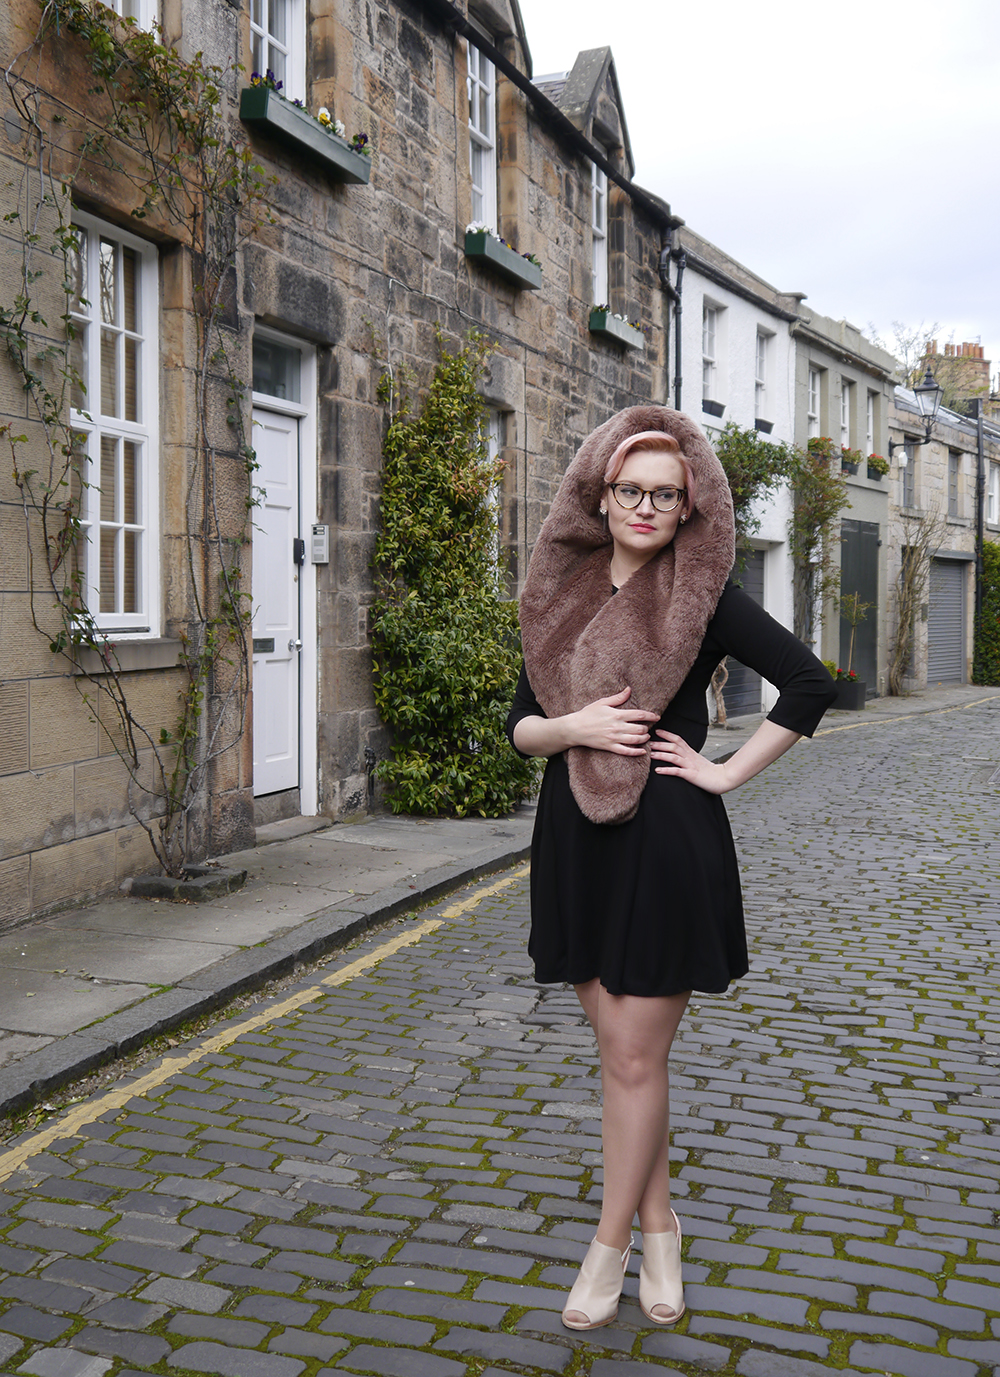 limited edition Chouchou Hollywood hood, #HOODSTYLIN, #HOODGIRLS, Dione Bowlt ceramic earrings, Stockbridge best streets, Edinburgh street style, natural light blog photography, candyfloss hair DIY, Edinburgh Stockbridge houses in Circus Lane